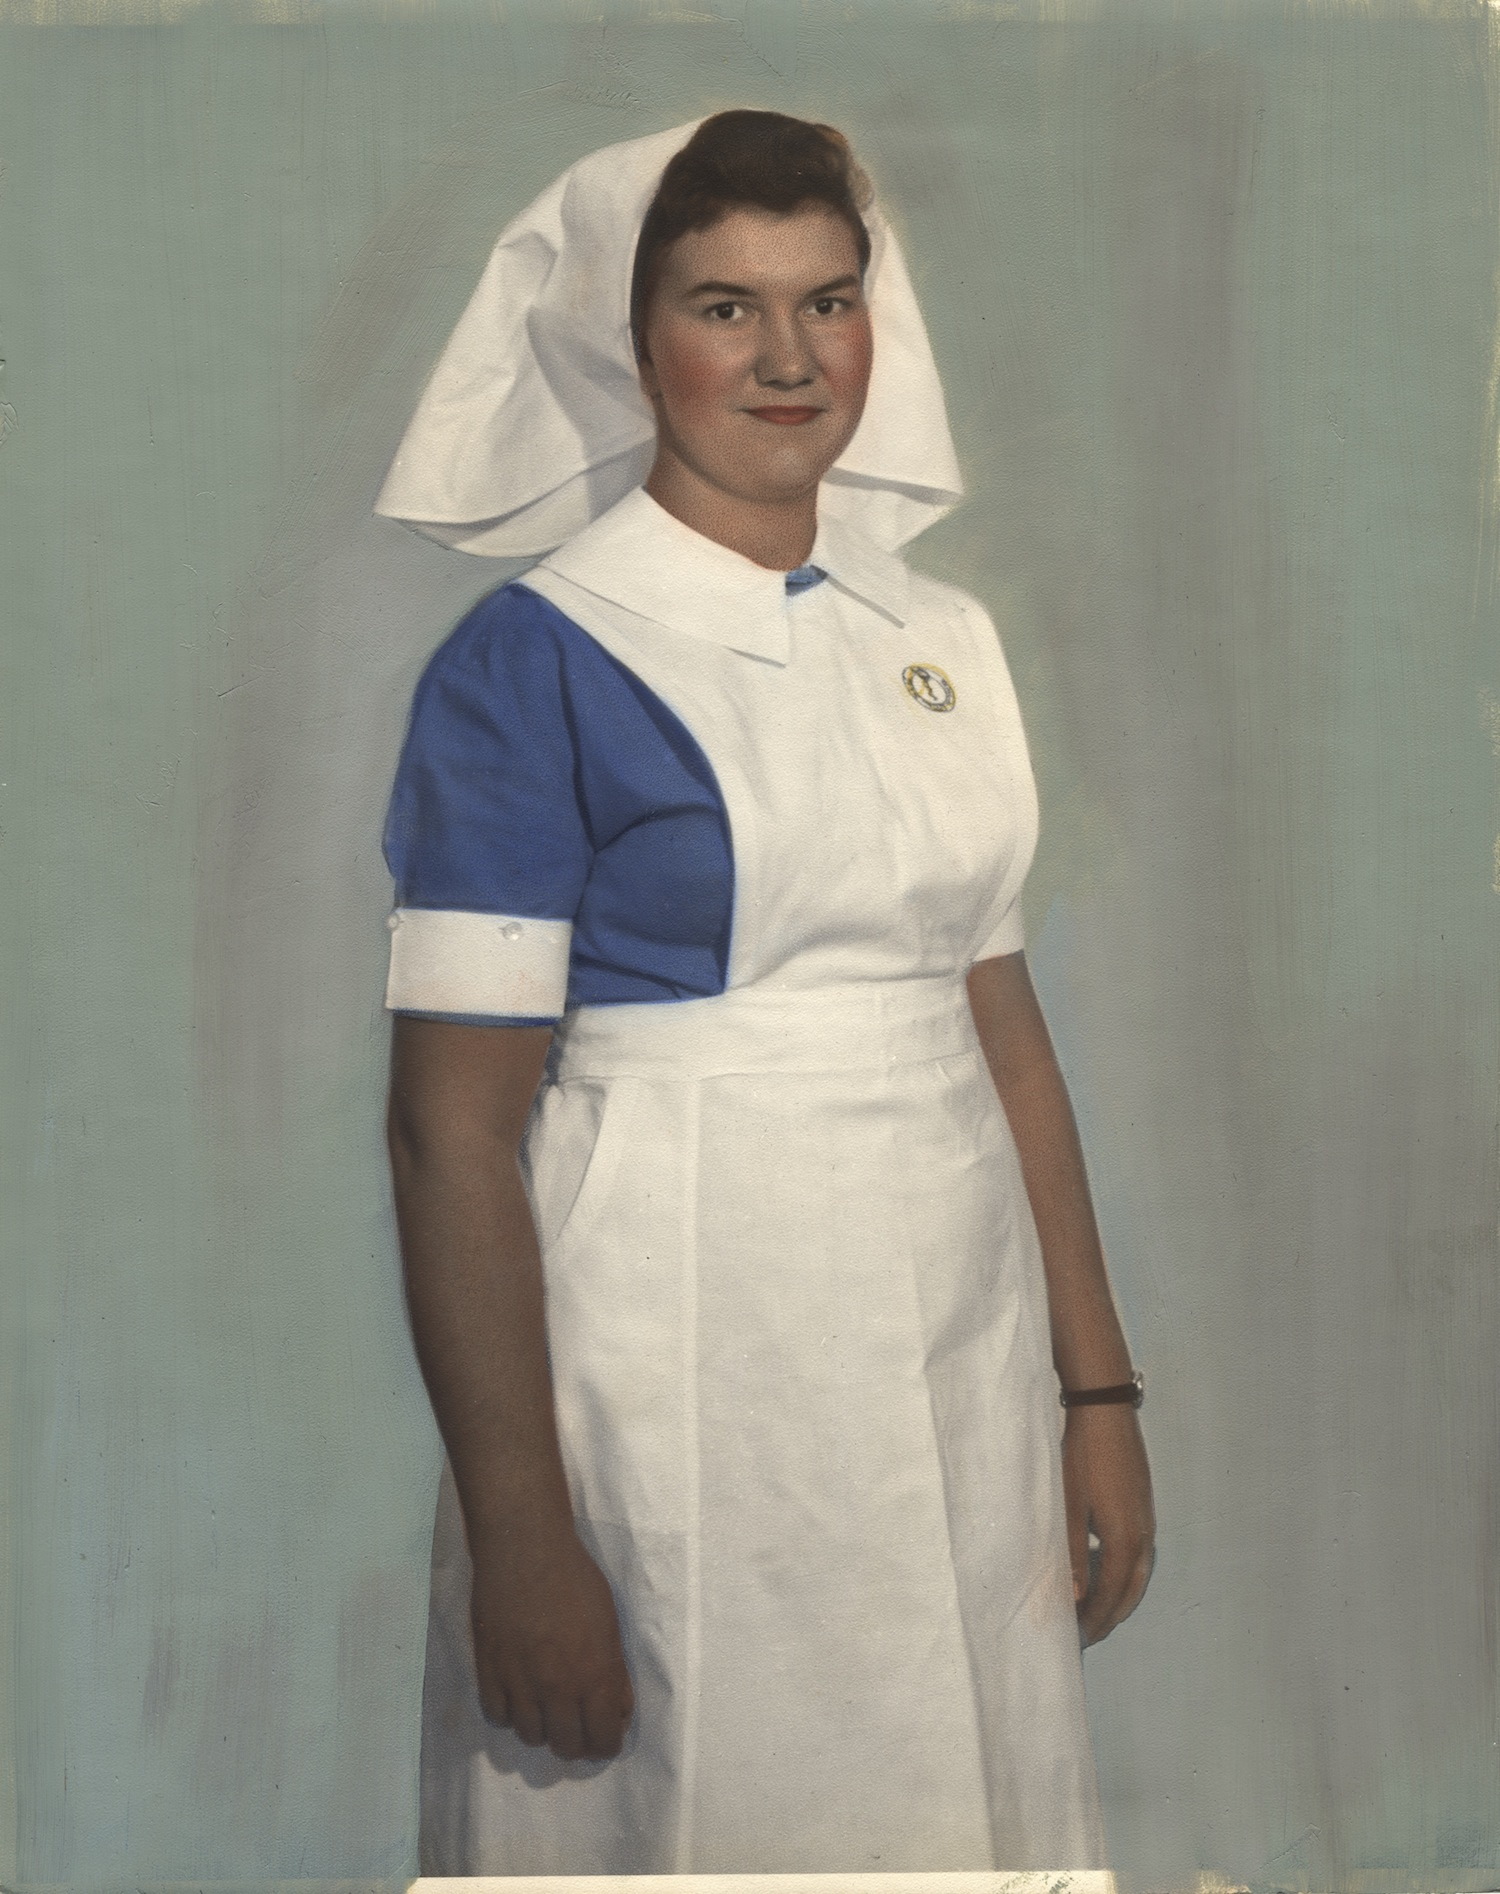 Nurse wearing uniform from Israel